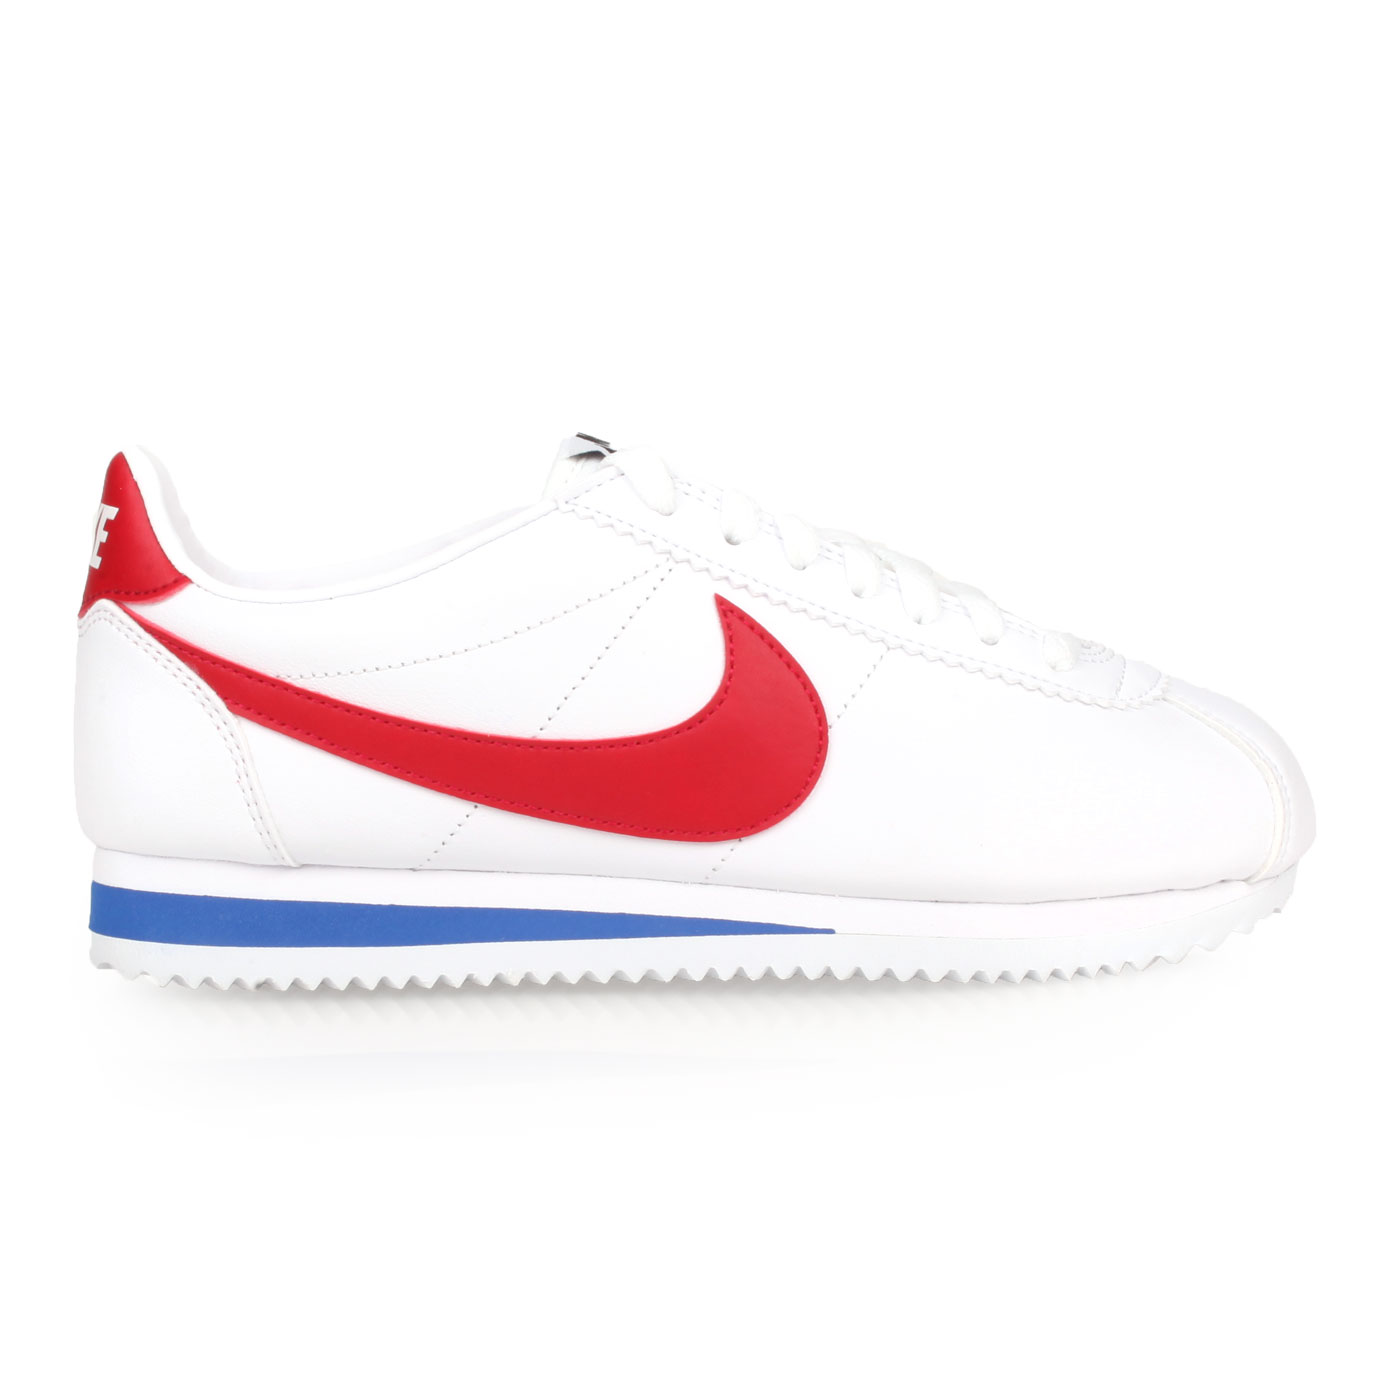 NIKE 女款休閒鞋  @WMNS CLASSIC CORTEZ LEATHER@807471101 - 白紅藍